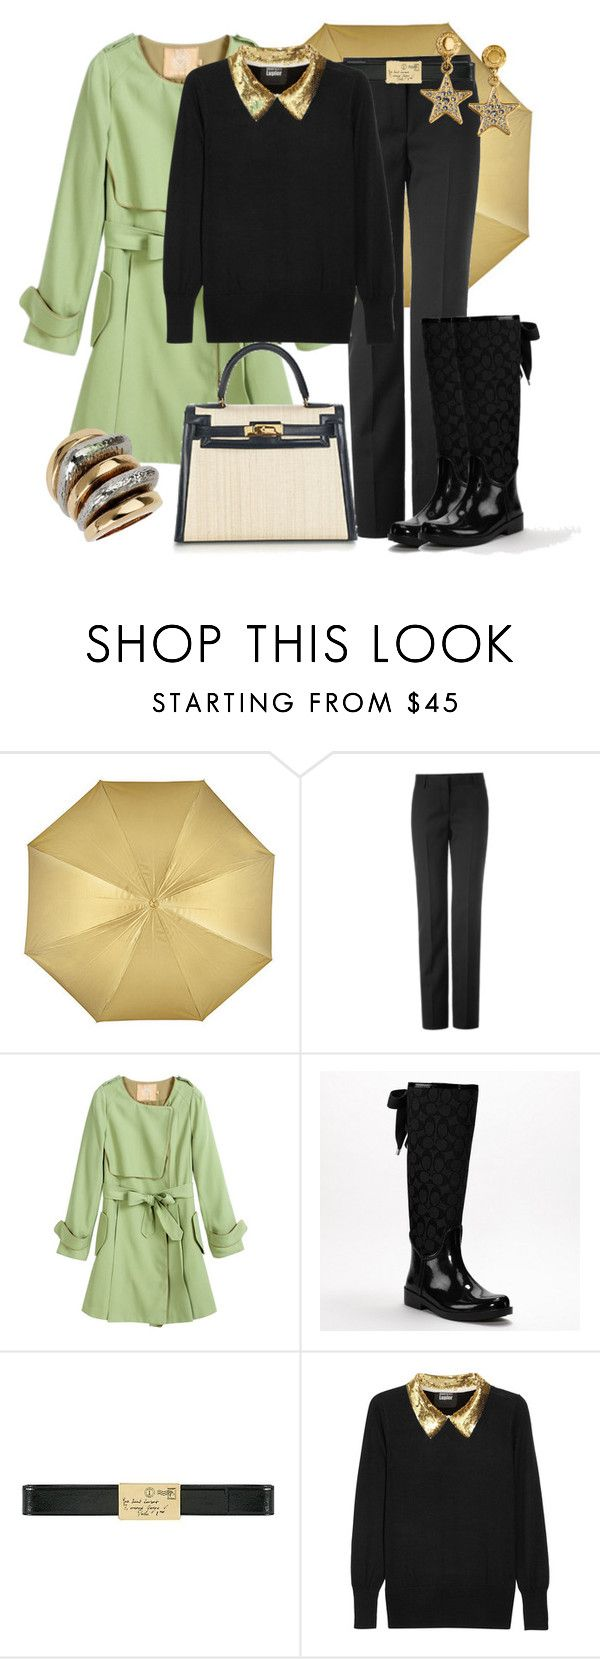 """""""DÍAS DE LLUVIA"""" by outfits-de-moda2 ❤ liked on Polyvore featuring Narciso Rodriguez, Coach, Yves Saint Laurent, Markus Lupfer, Hermès and Topshop"""